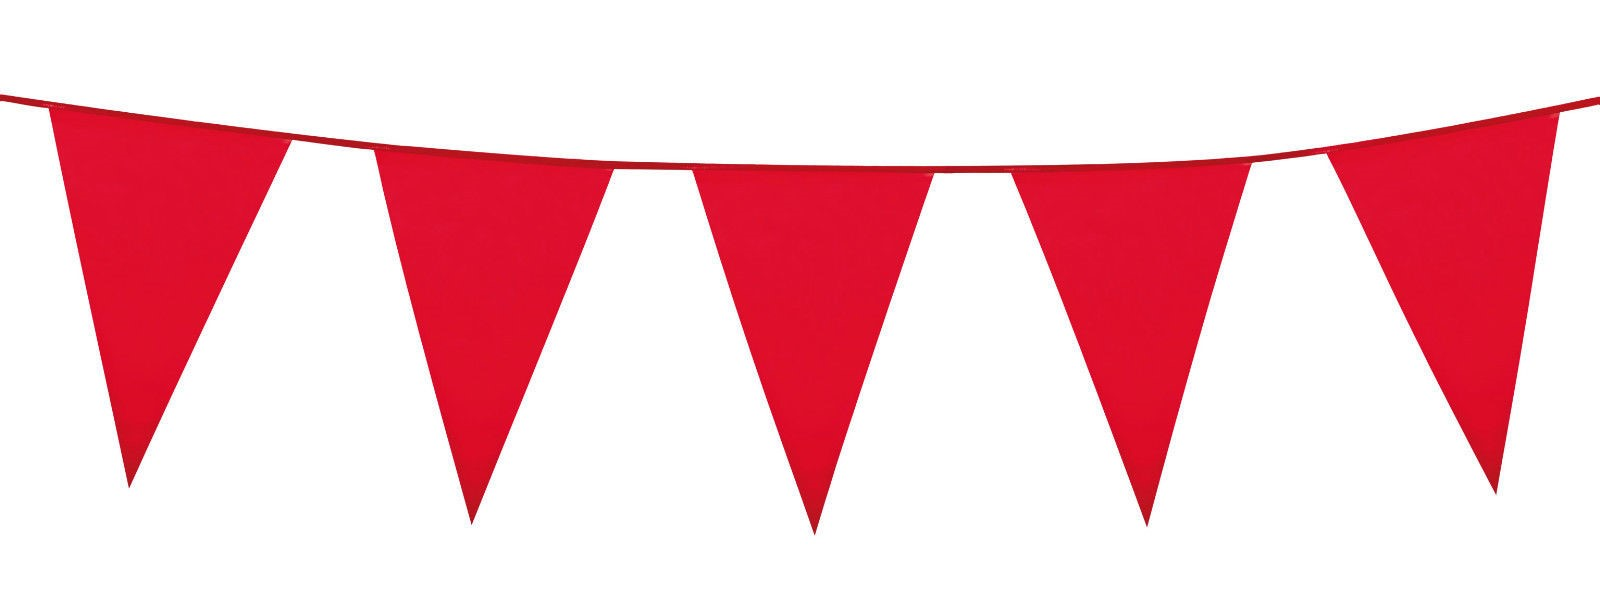 Red party clipart png free stock Pennants Clipart | Free download best Pennants Clipart on ClipArtMag.com png free stock